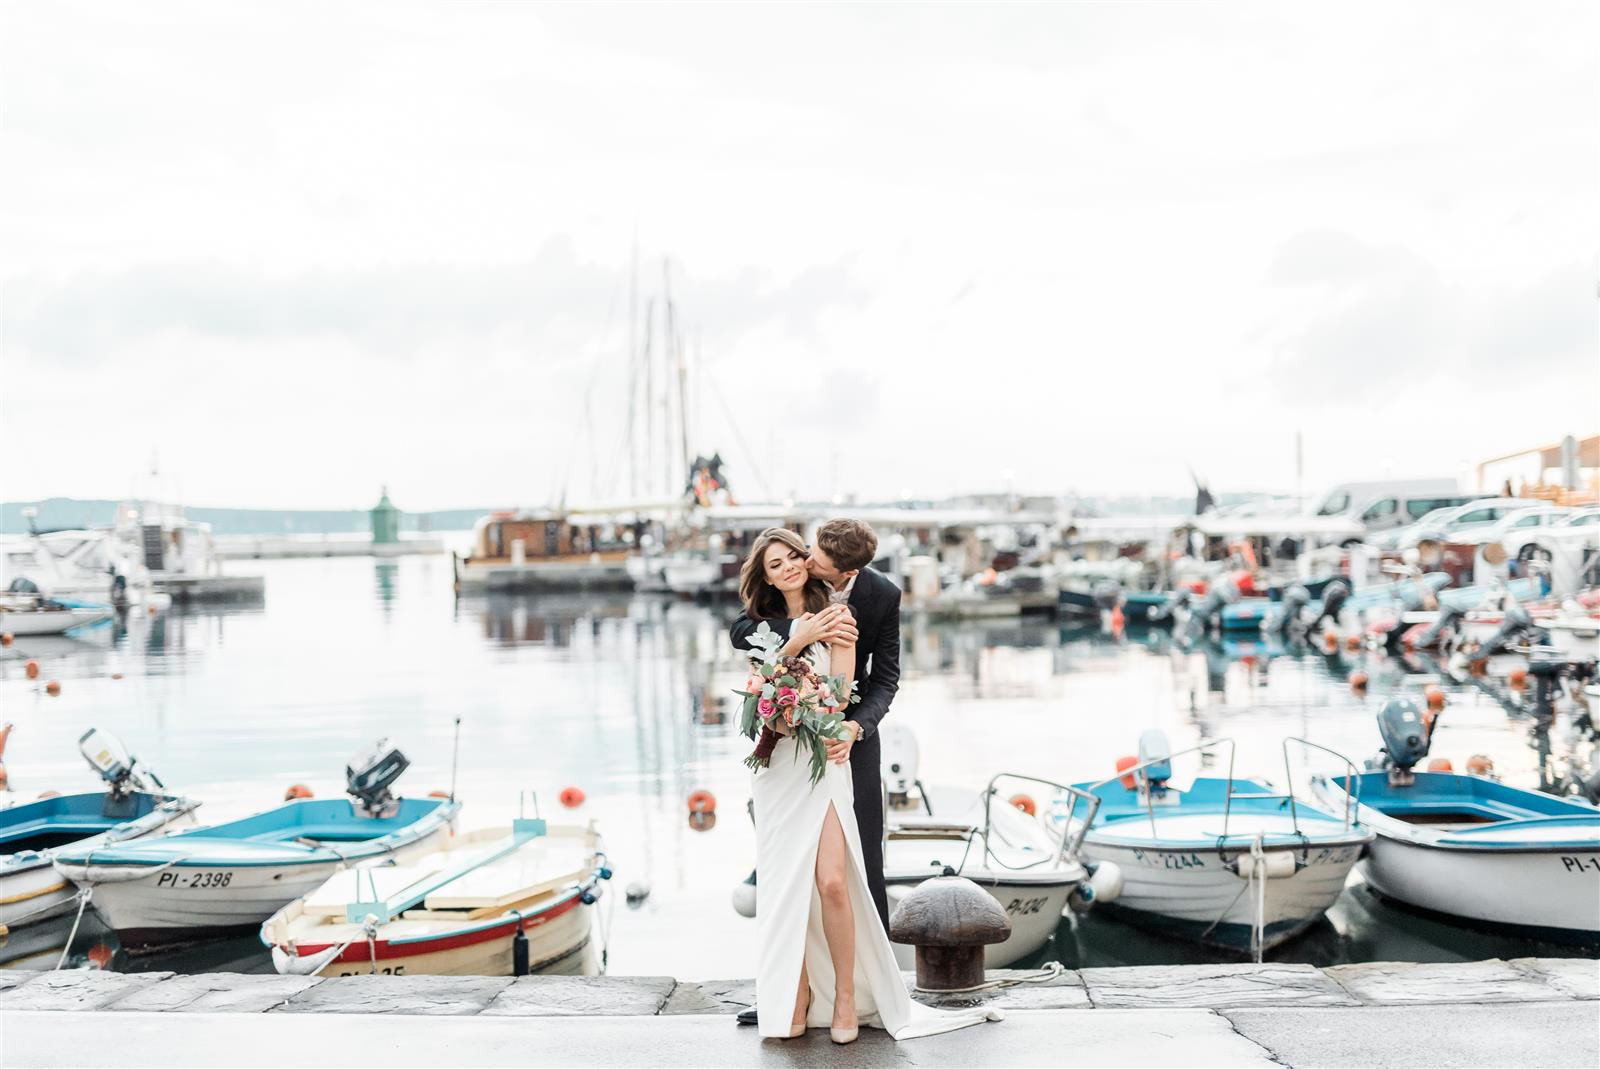 Wedding in Piran - Sofya & Stepan - Wedding photographer Piran